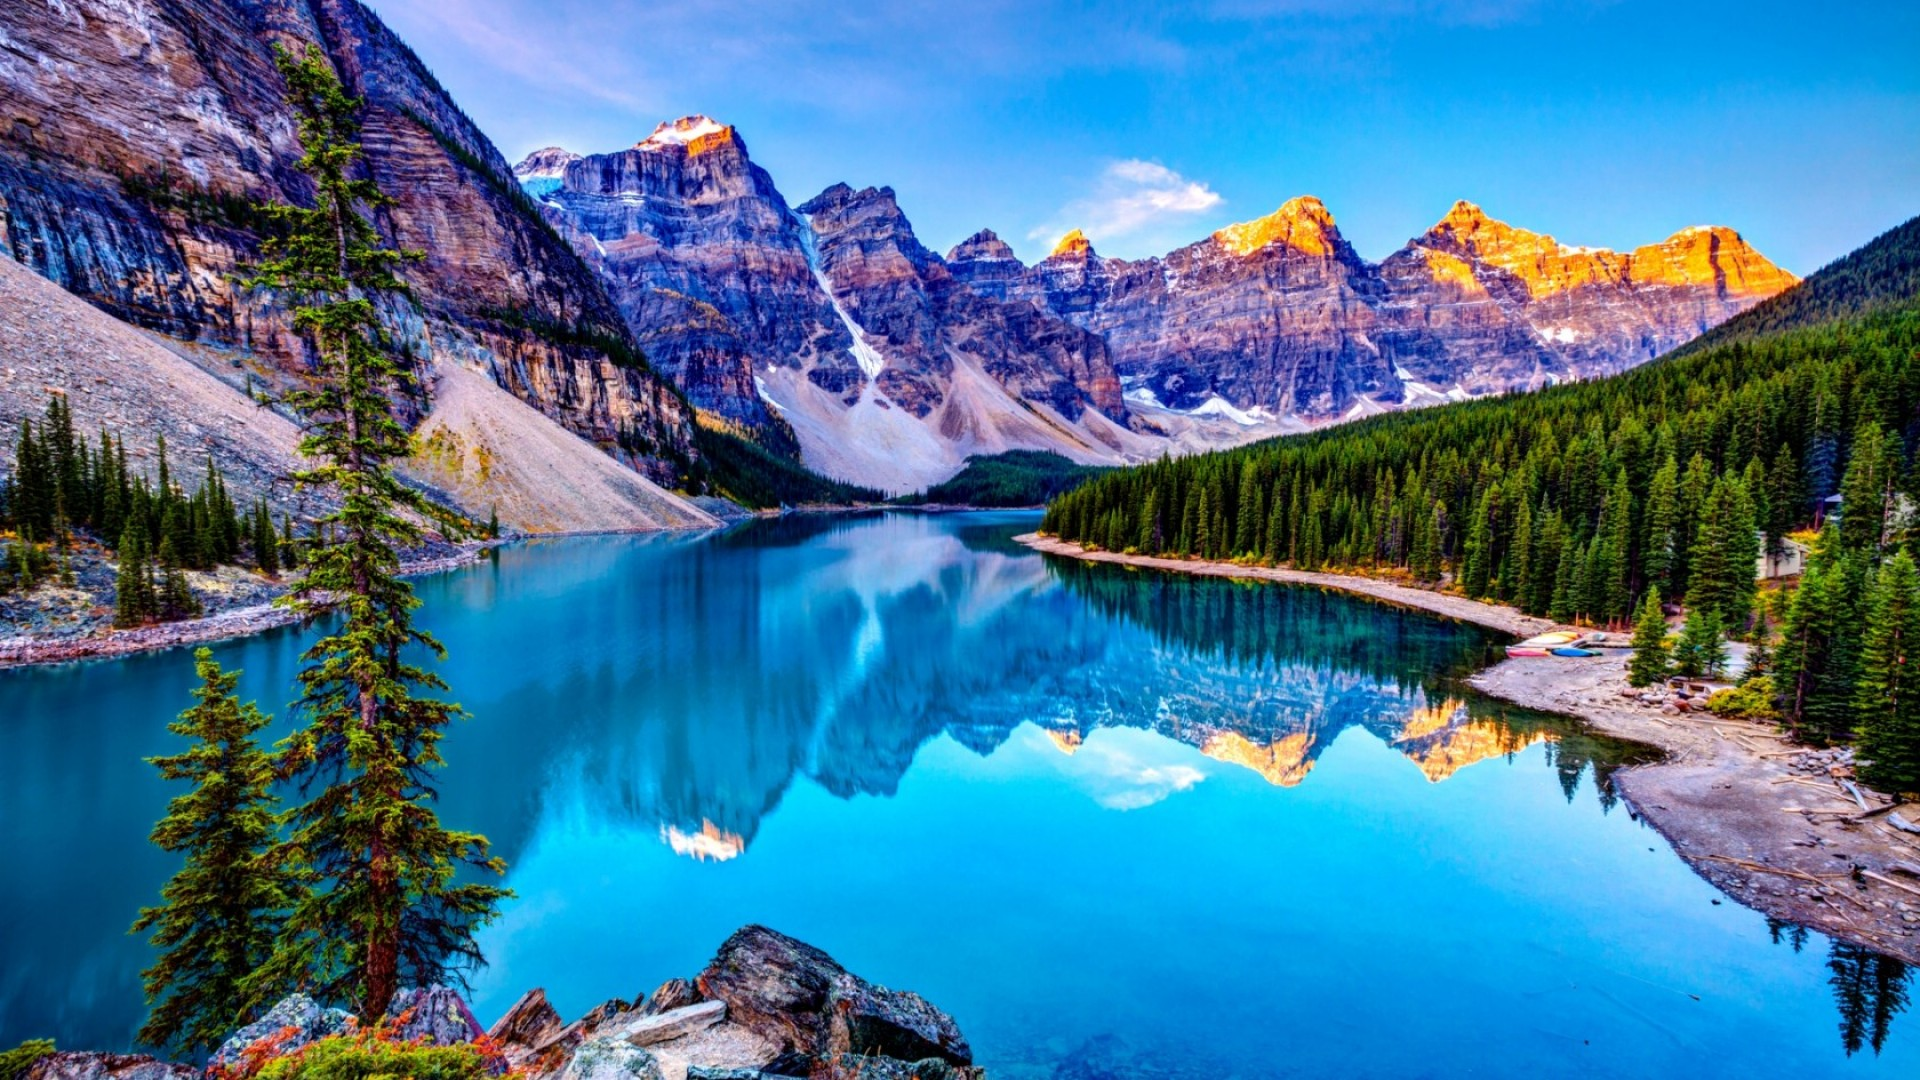 hd rocky mountains wallpapers backgrounds computer desktop pictures